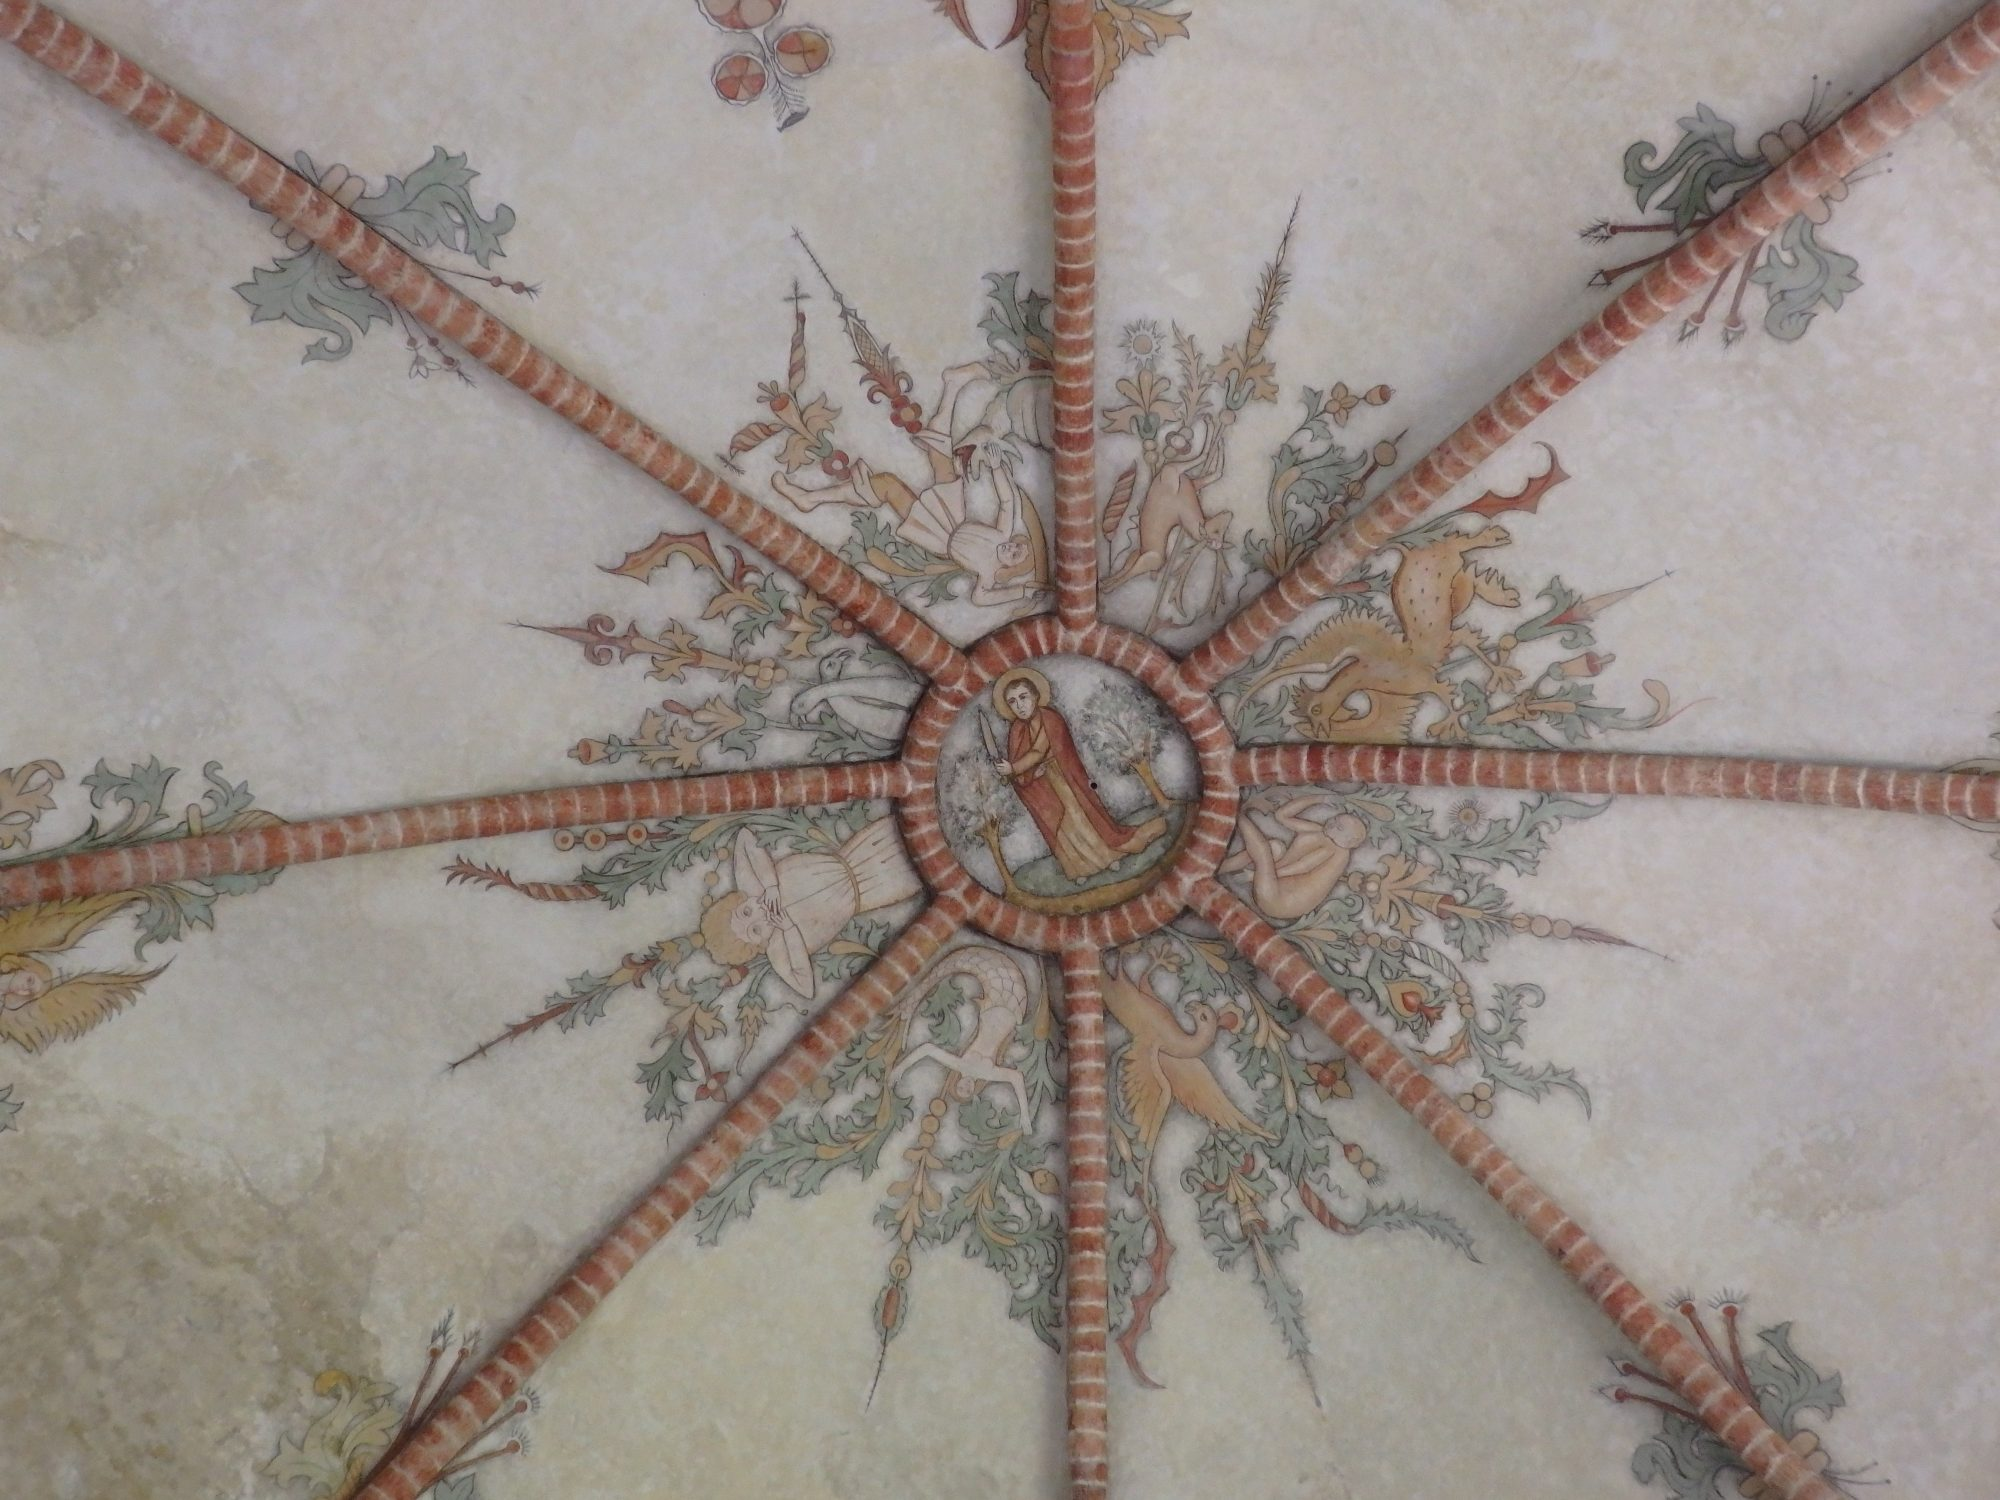 a ceiling fresco at the top of a dome in Stedum church in Groningen province